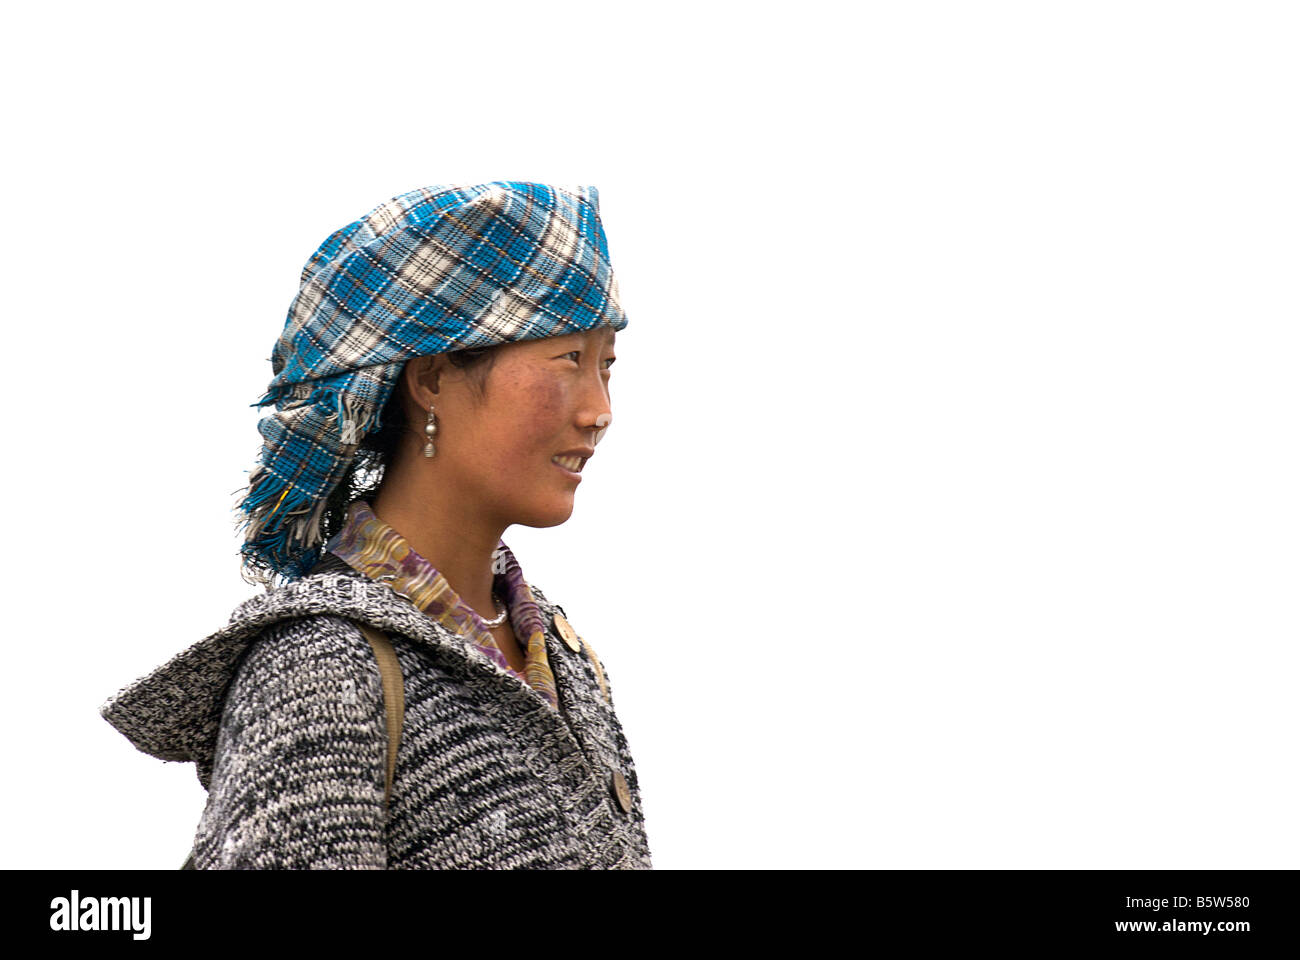 Tibetan woman against white sky - Stock Image